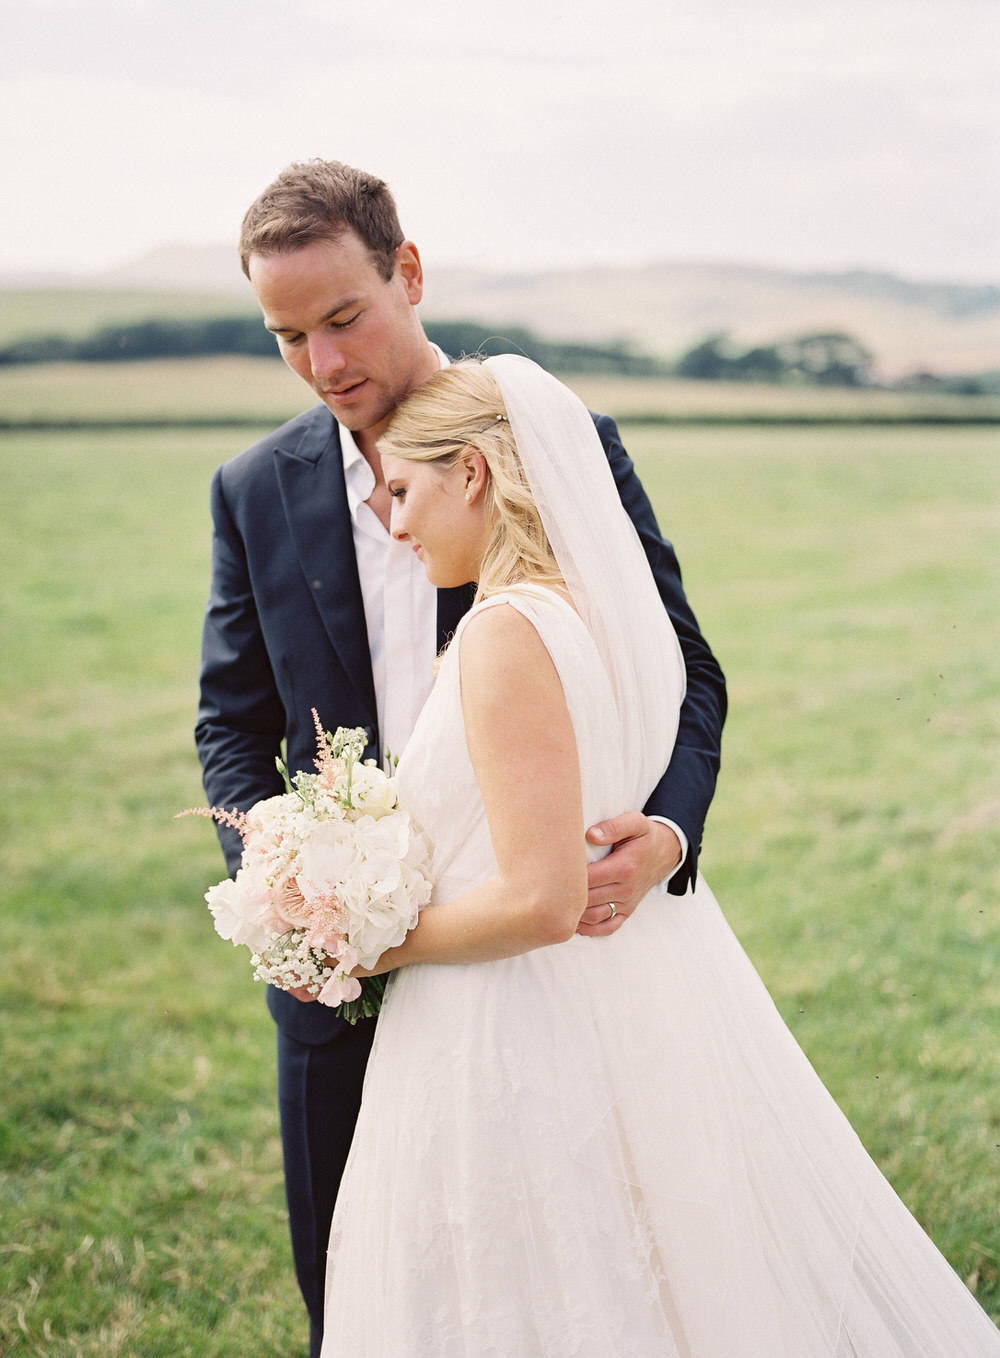 kimmeridge wedding by imogen xiana-538.jpg